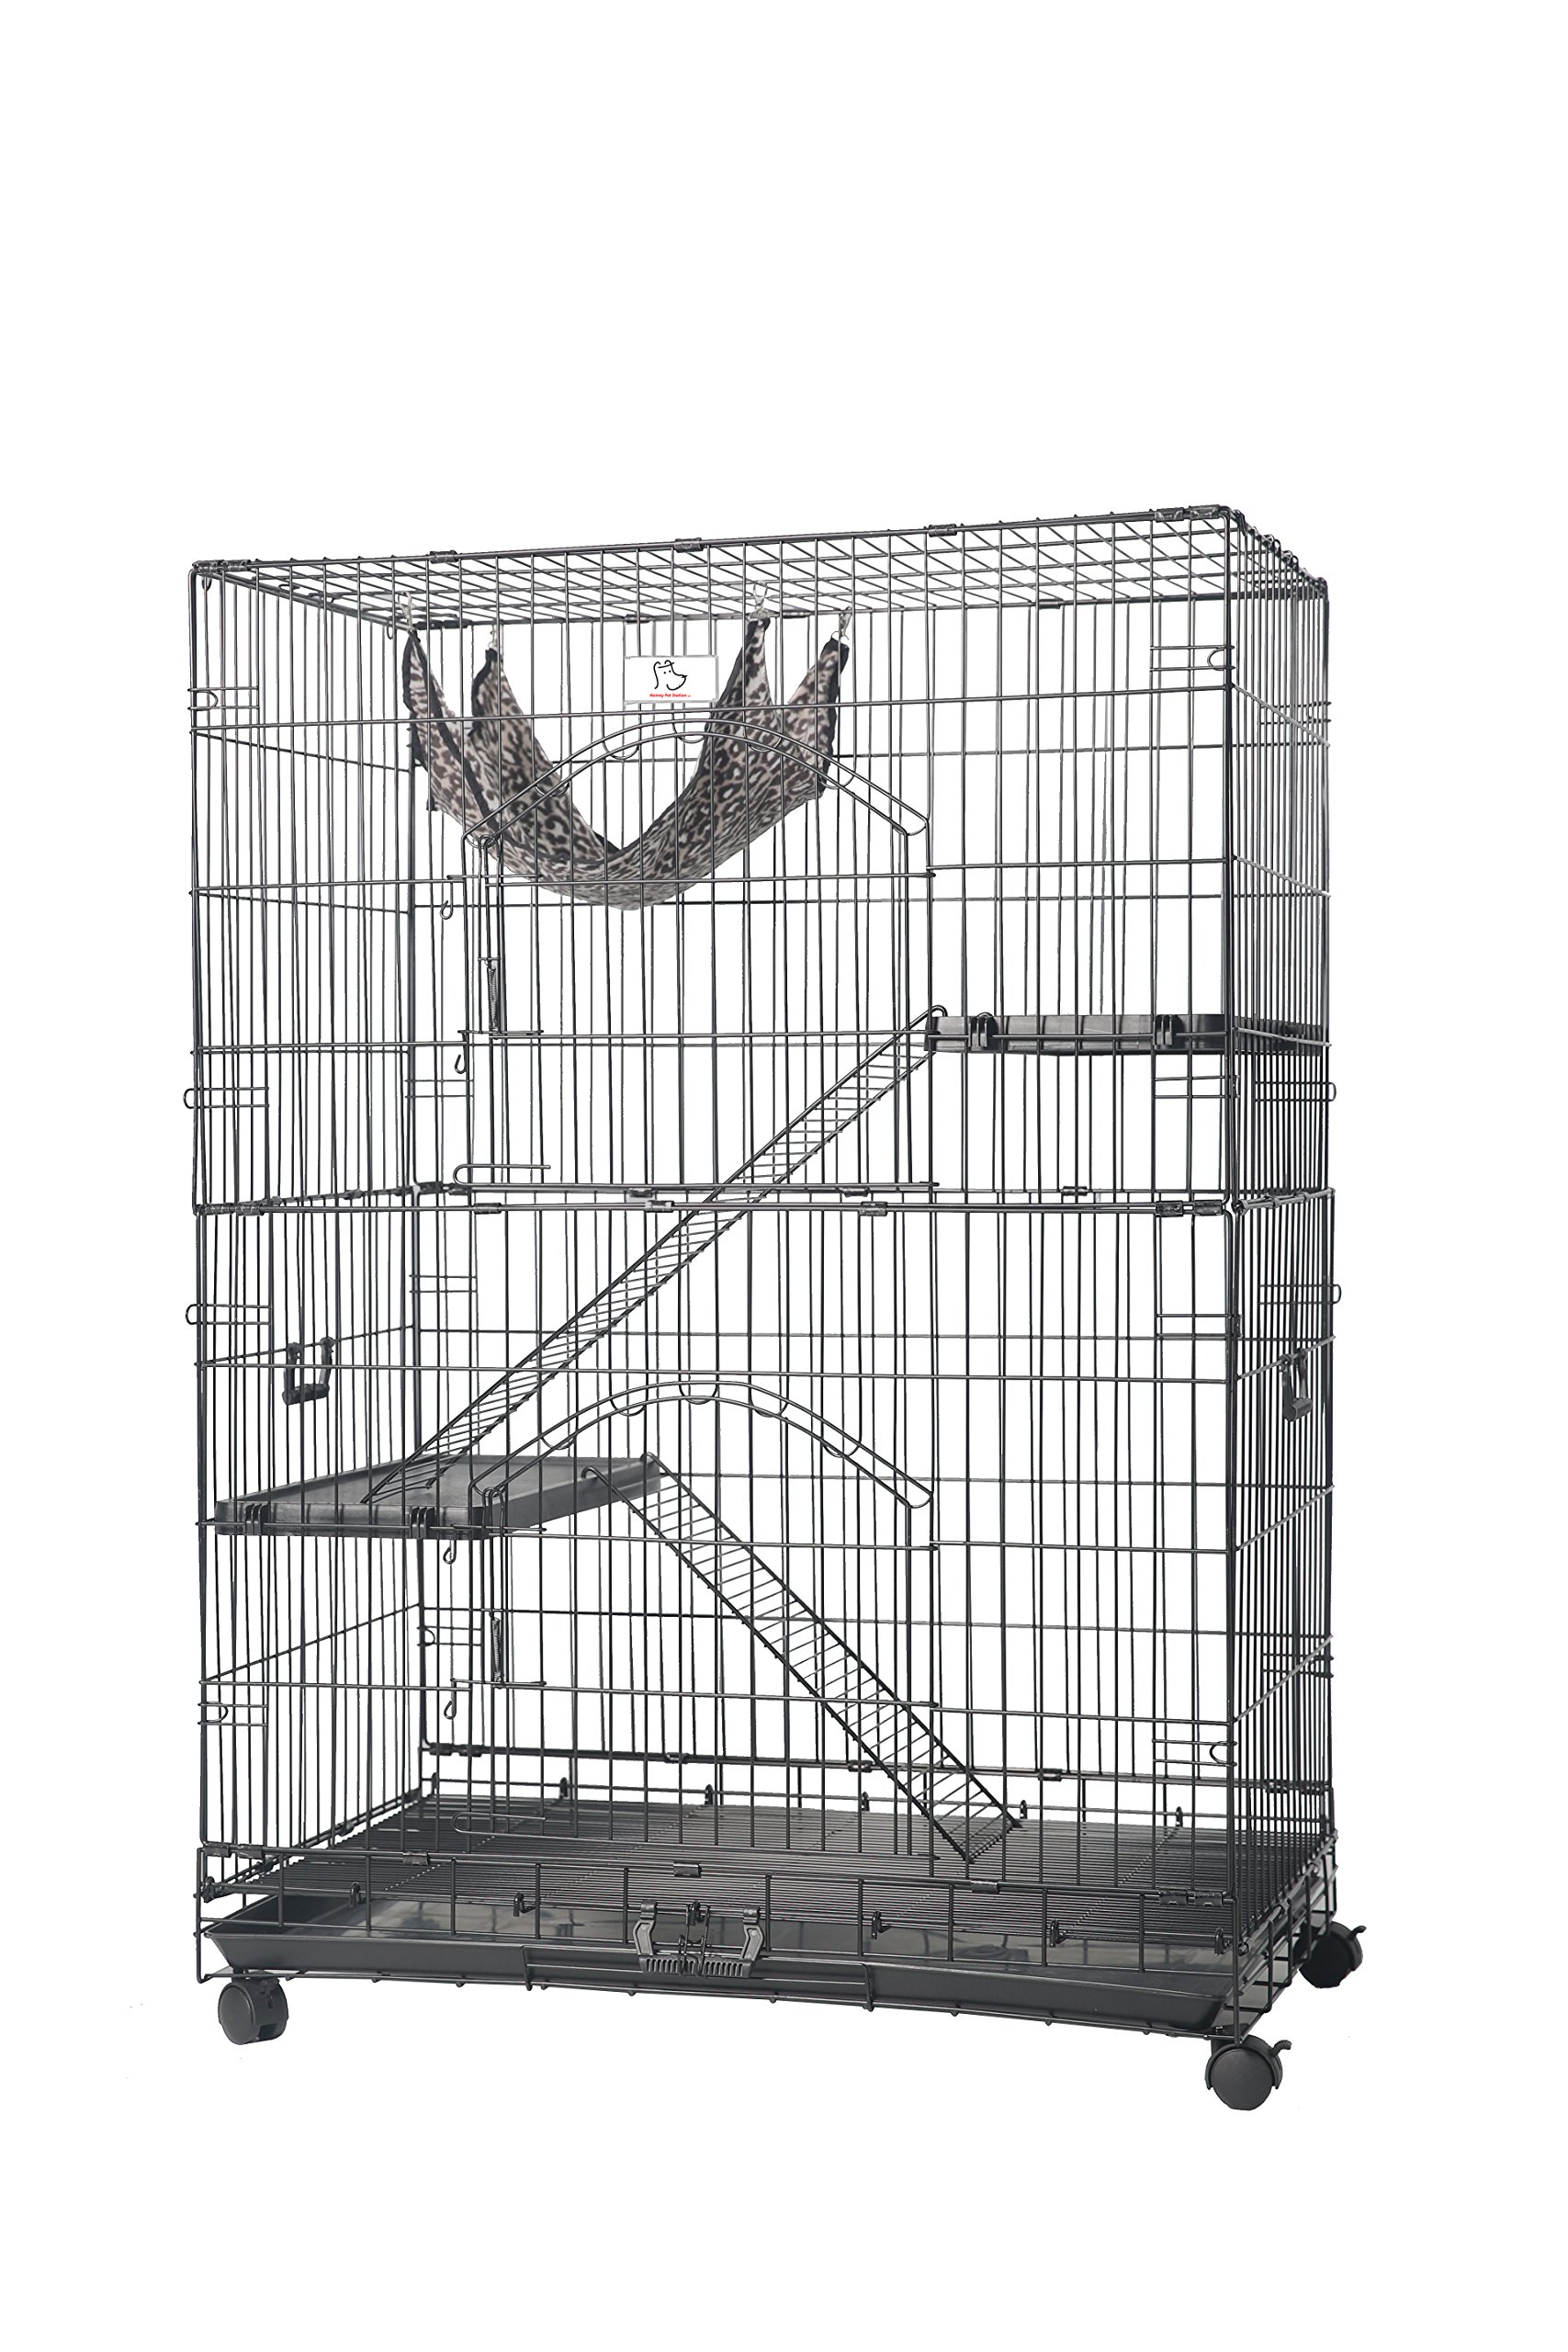 Homey Pet-36 Three Tiers Cat Cage w/Pull Out Tray, Sleeping Platform and Casters(CT-P3W)